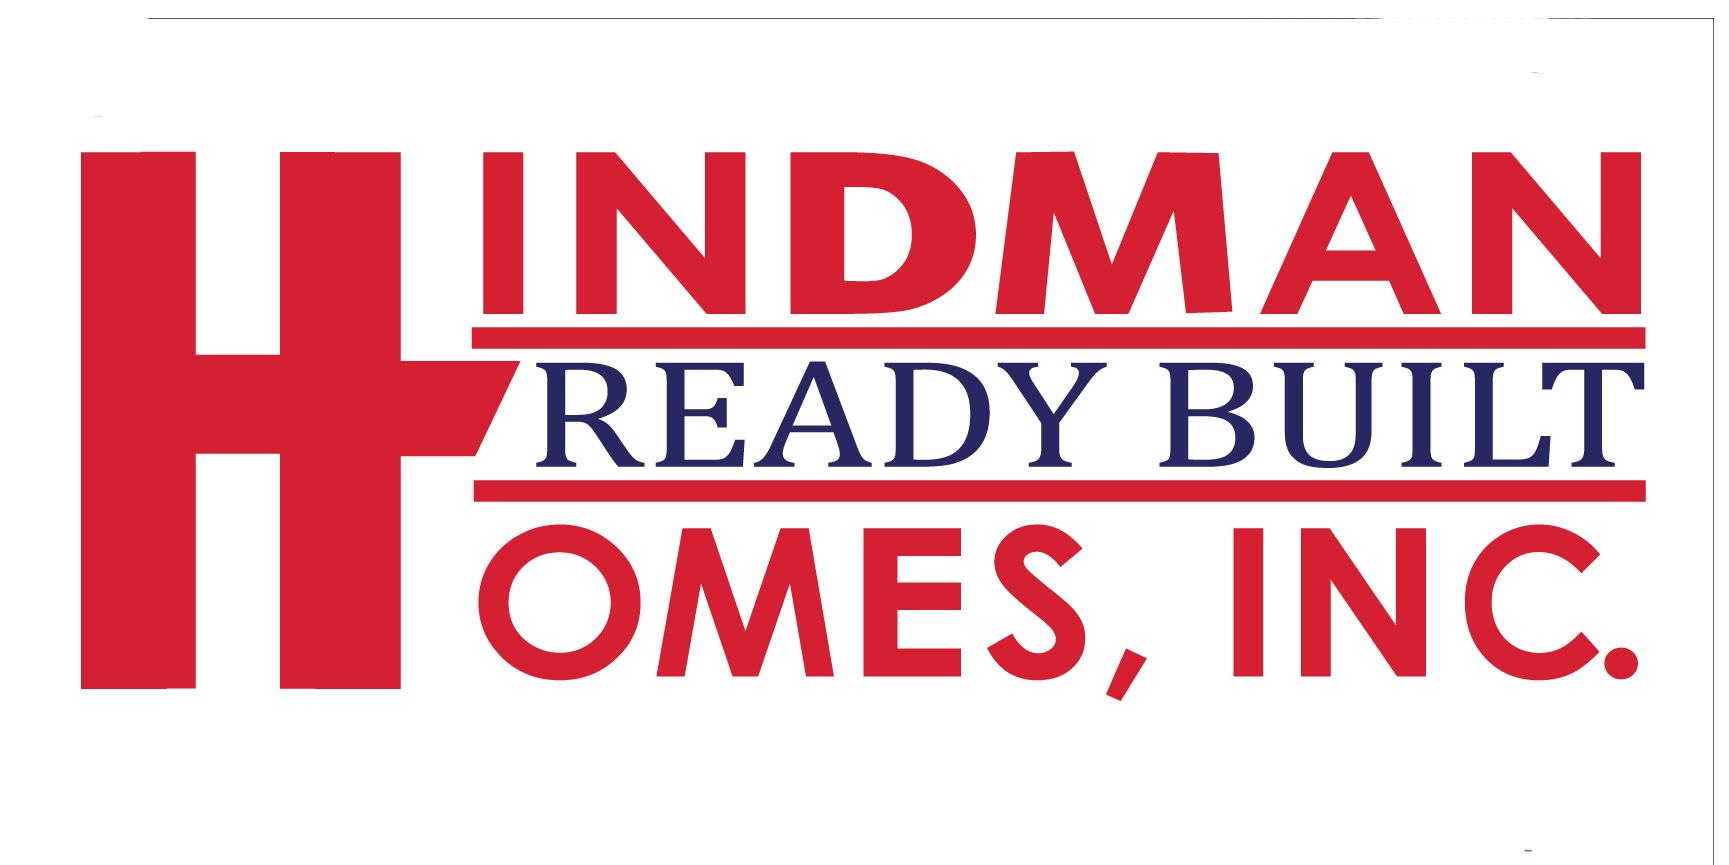 Hindman Ready Built Homes Logo